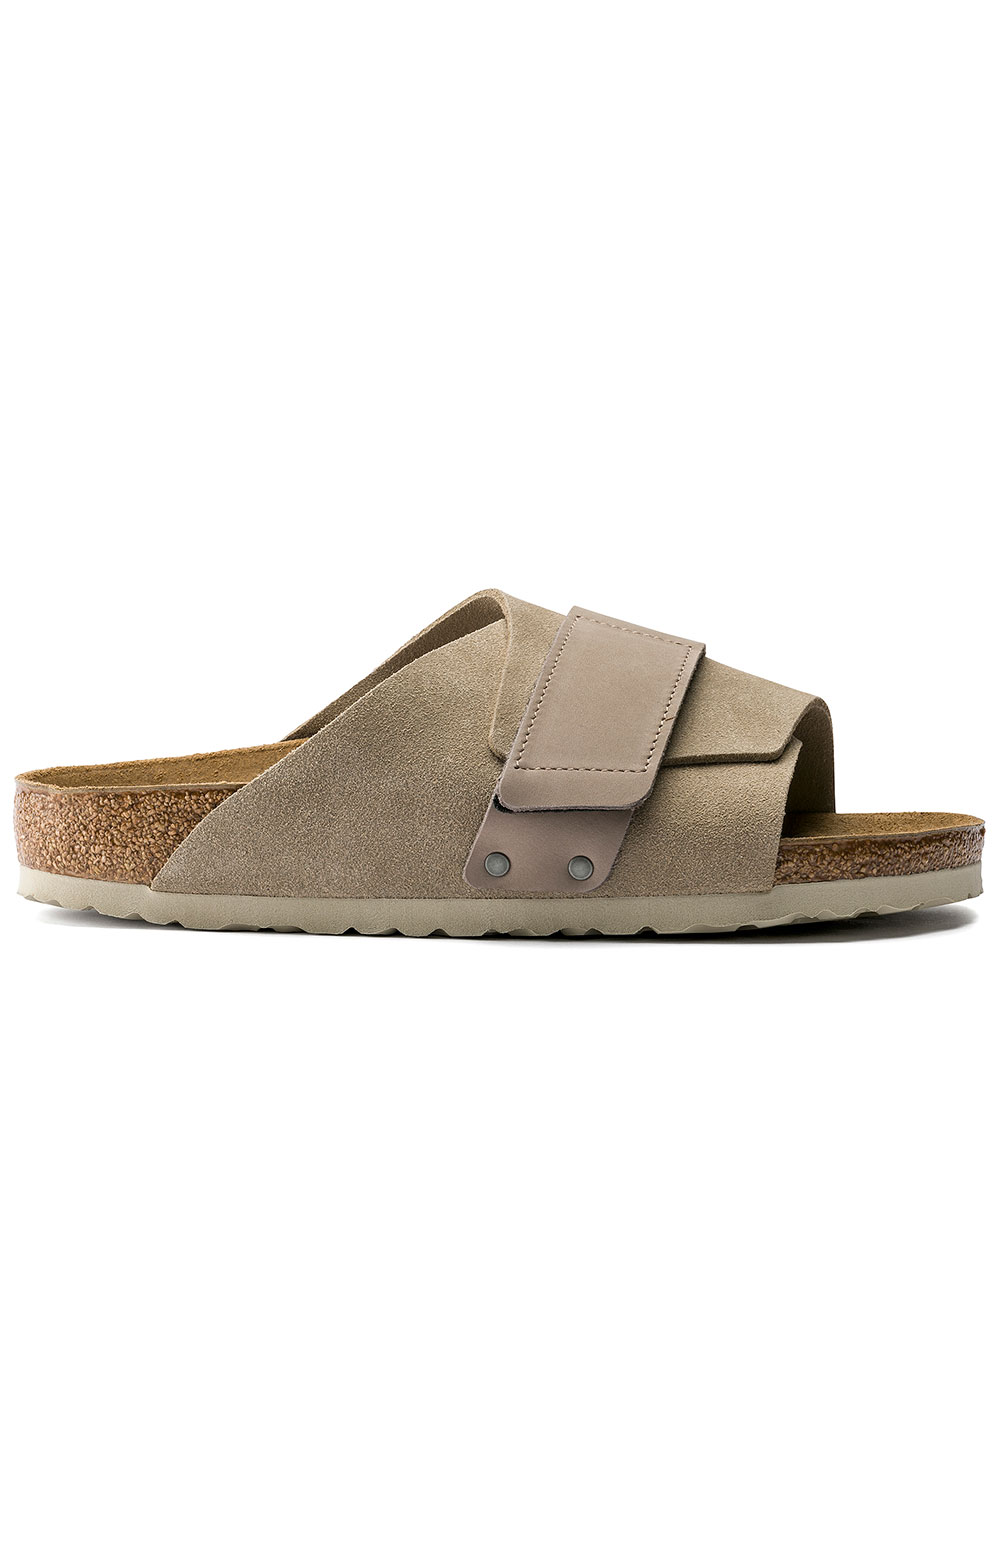 (1015573) Kyoto Sandals - Taupe 4